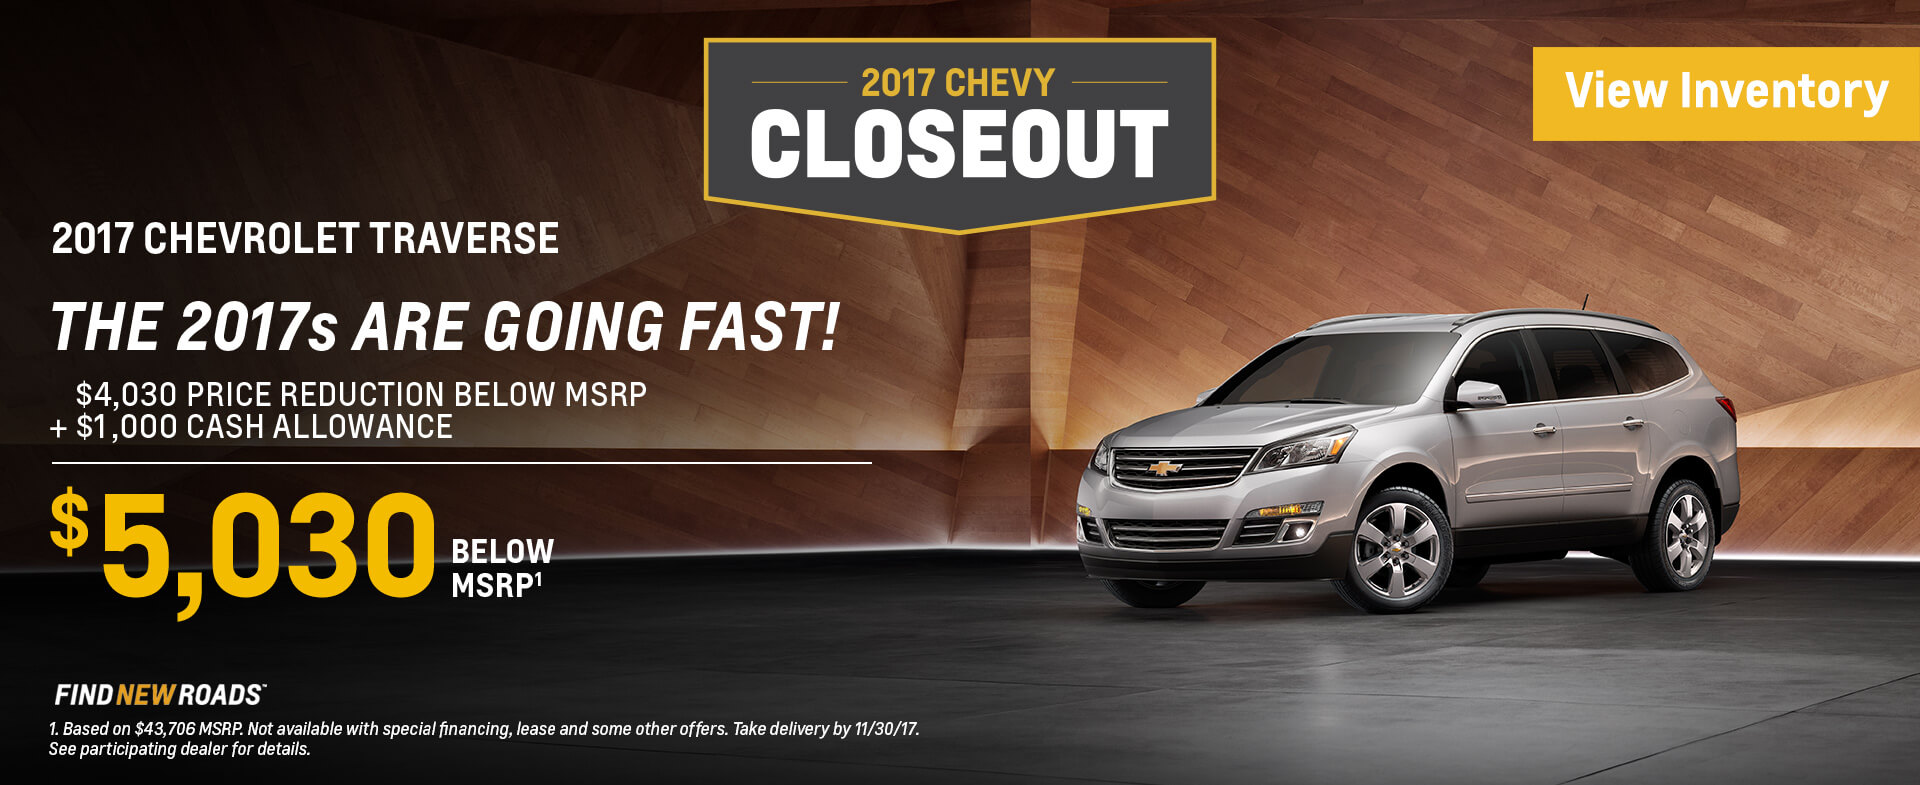 SoCal Chevy | New and Used Chevrolet Vehicles | Serving Los Angeles, Ventura and San Bernardino ...